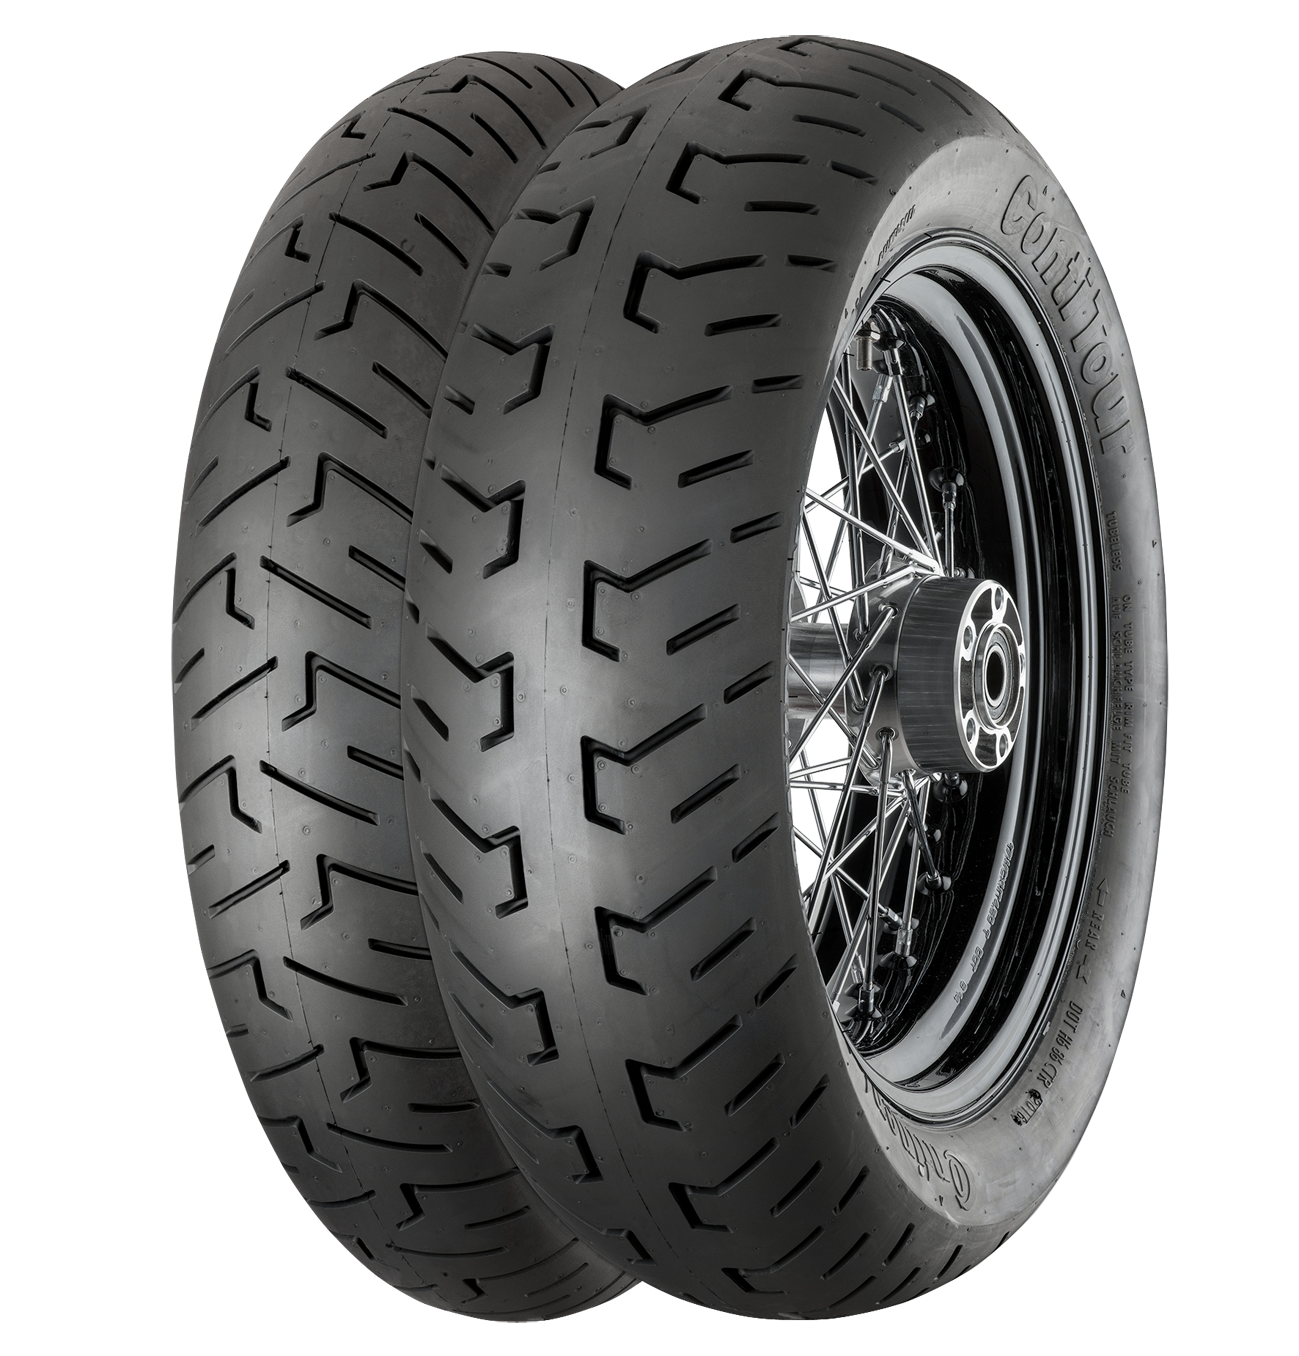 150//80B16 Reinforced Continental Conti Tour Rear Tire